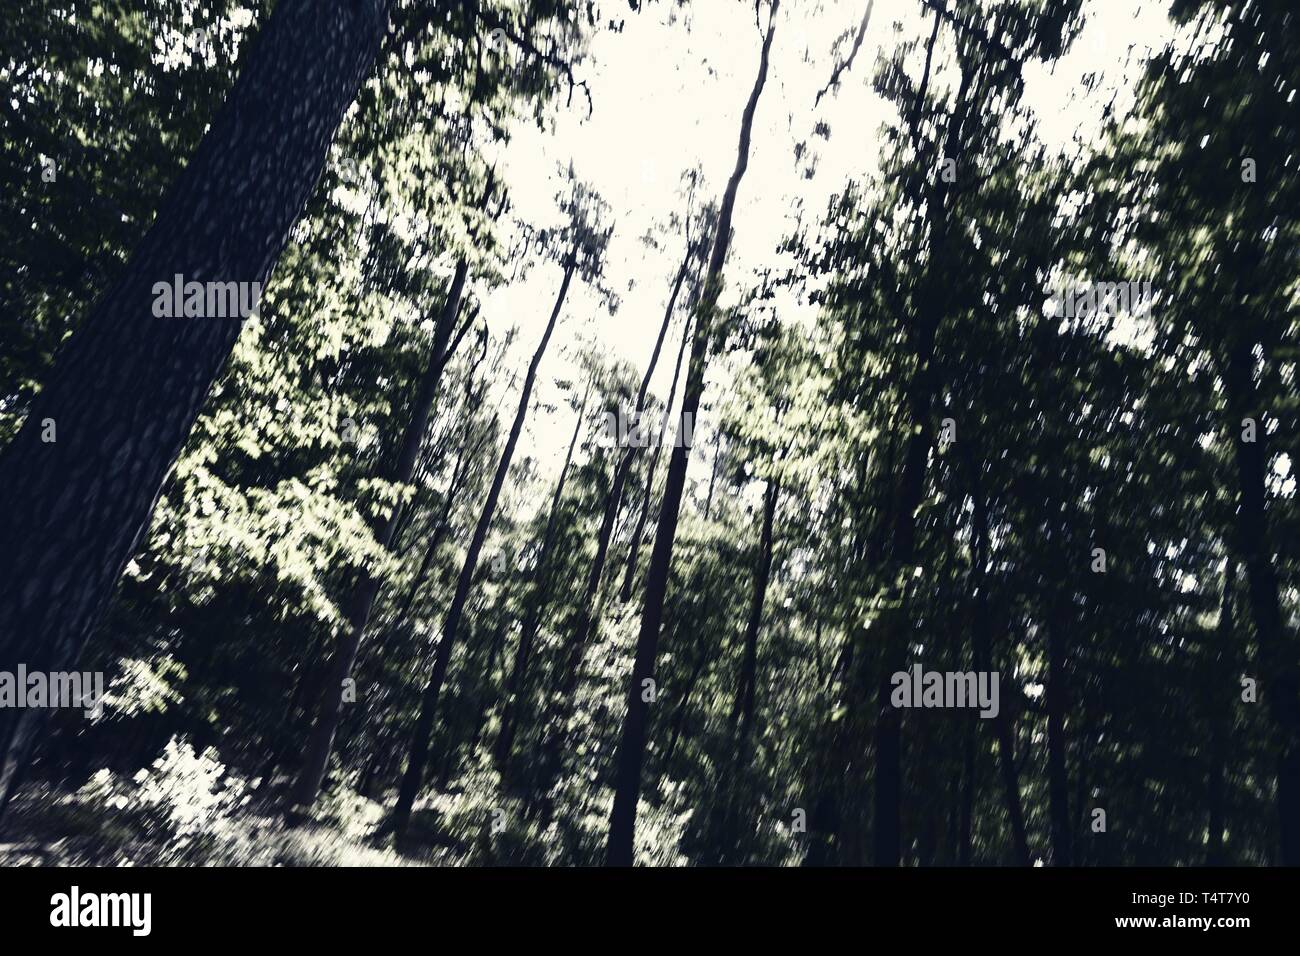 Danger in the forest, symbolic image - Stock Image